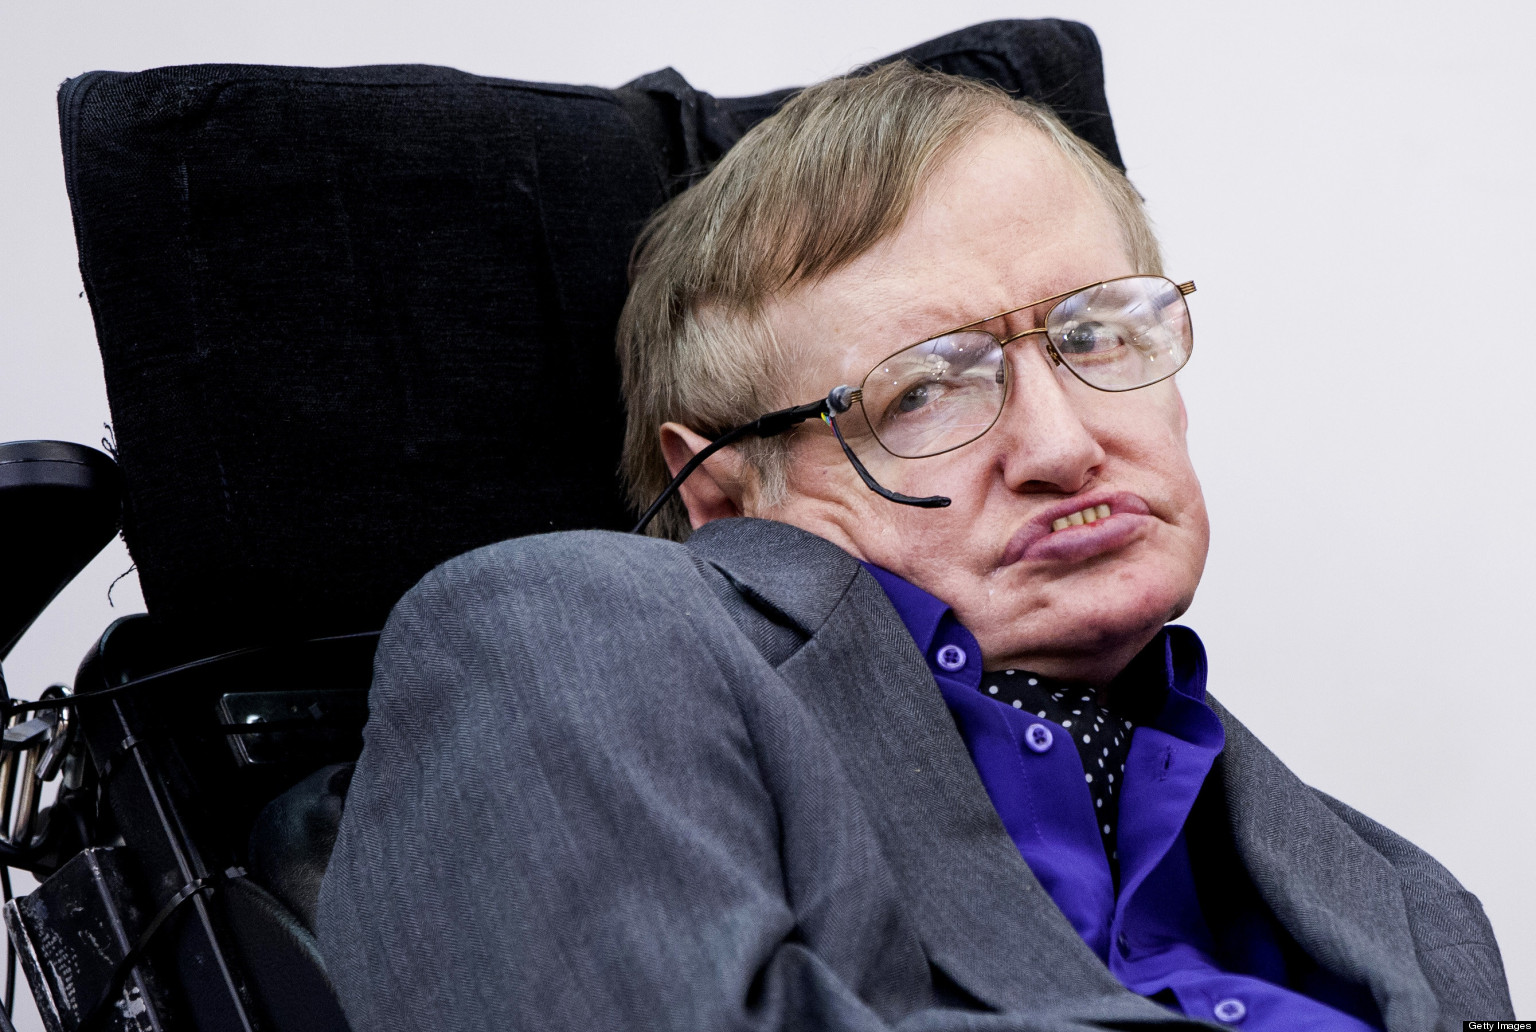 Some Hawking's philosophies that might interest you